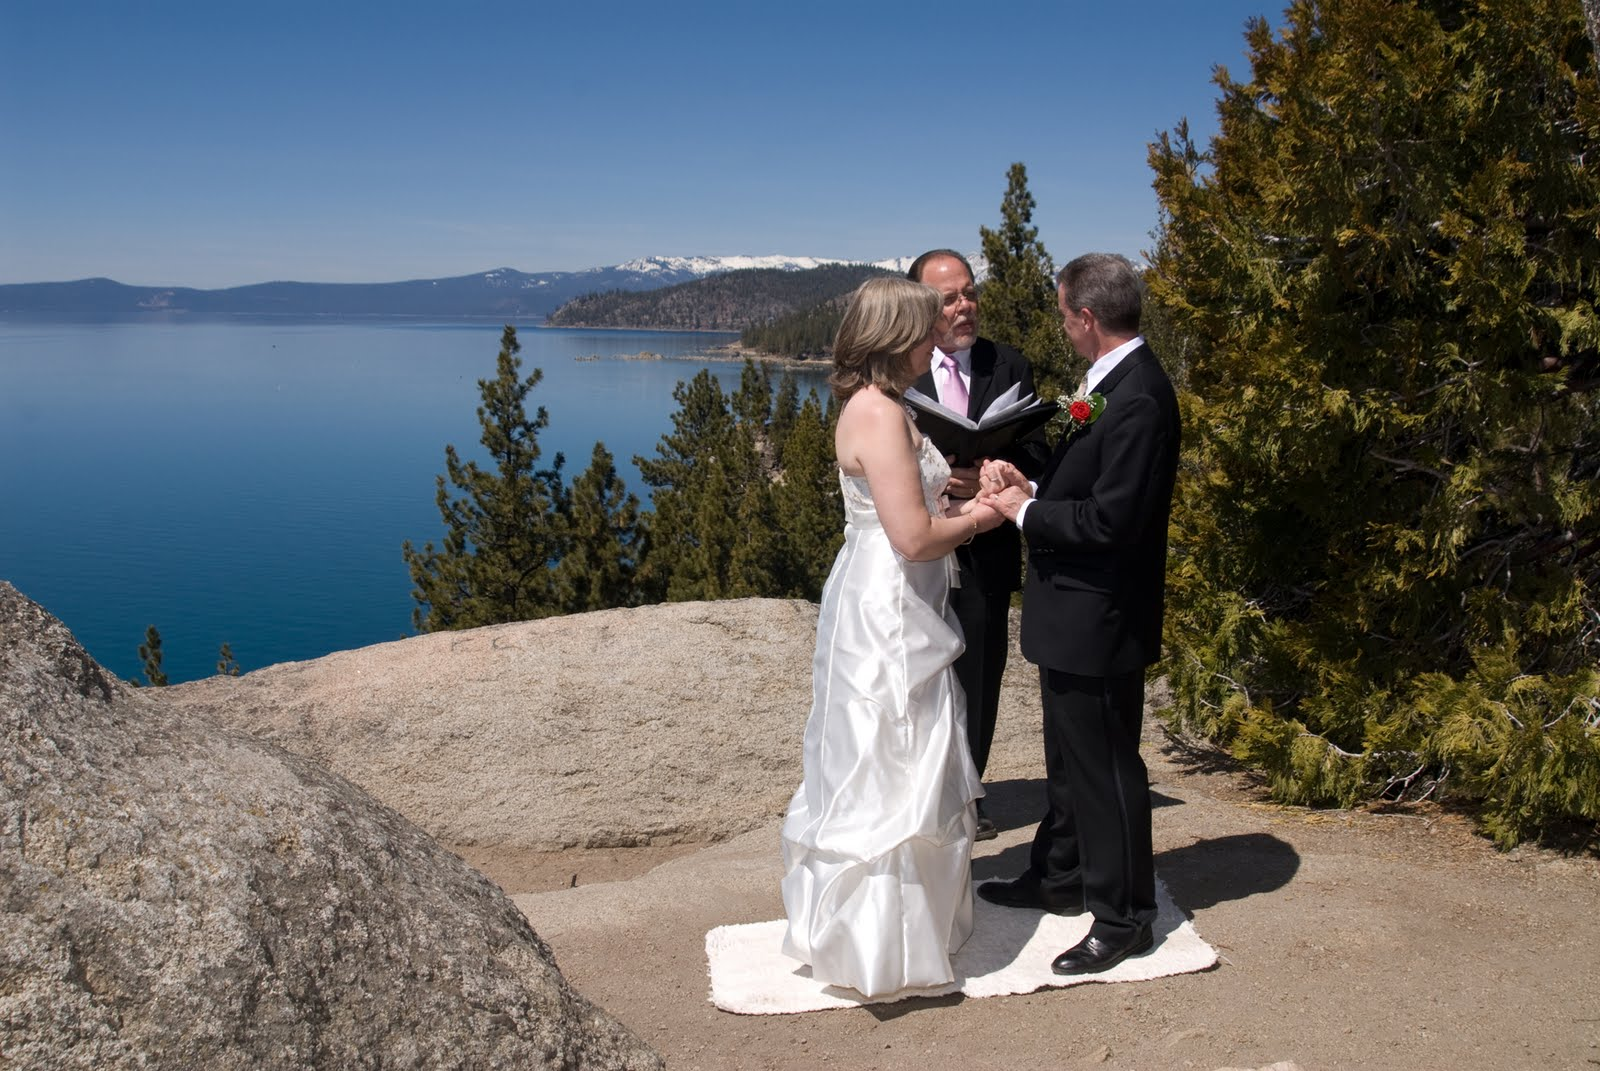 tahoe vista hindu single men Tahoe vista's best 100% free dating site meeting nice single men in tahoe vista can seem hopeless at times — but it doesn't have to be mingle2's tahoe vista.